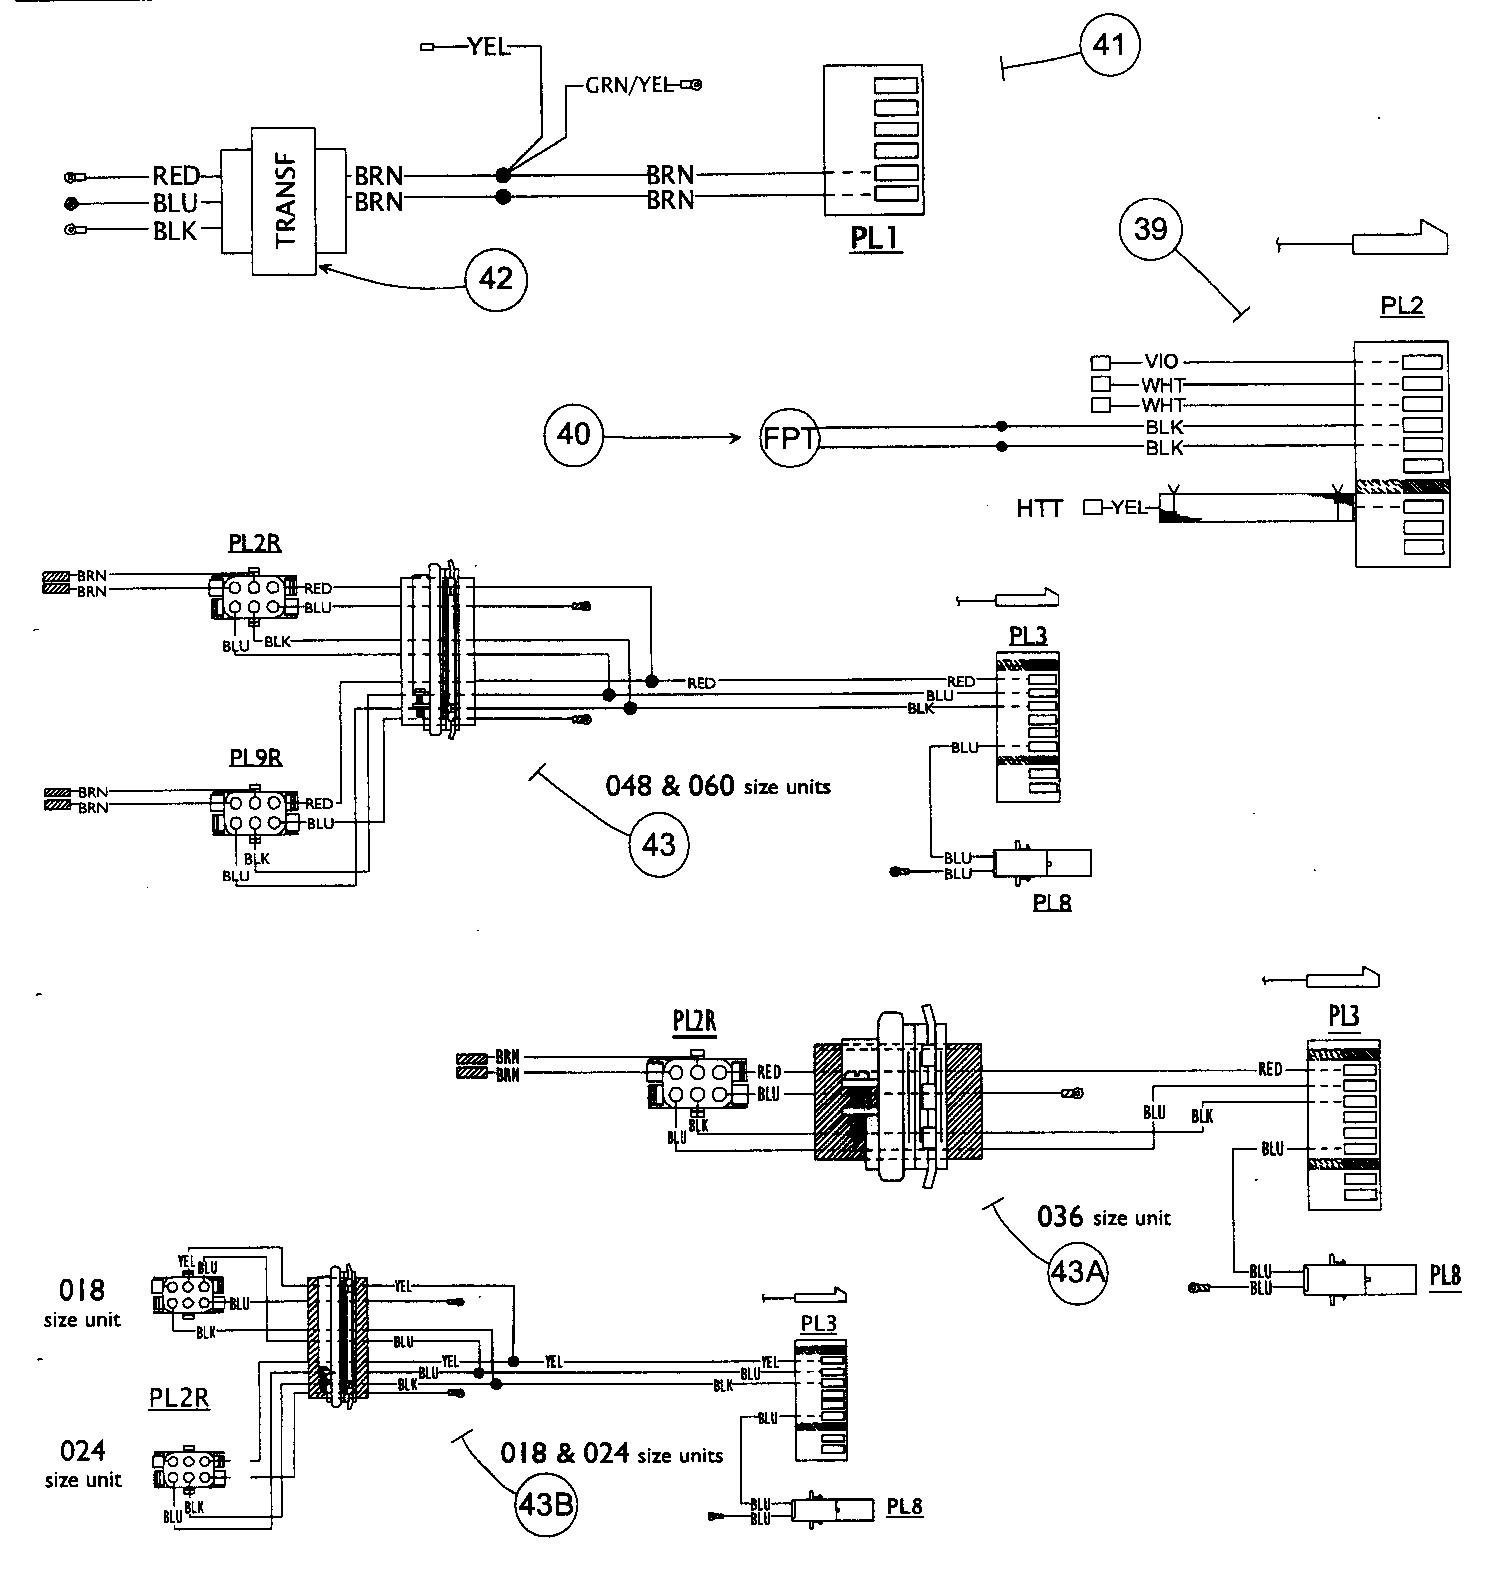 carrier ac unit wiring diagram Collection-Wiring Diagram Air conditioning Unit New Carrier Air Conditioning Unit Wiring Diagram New Diagrams Carrier 12-l